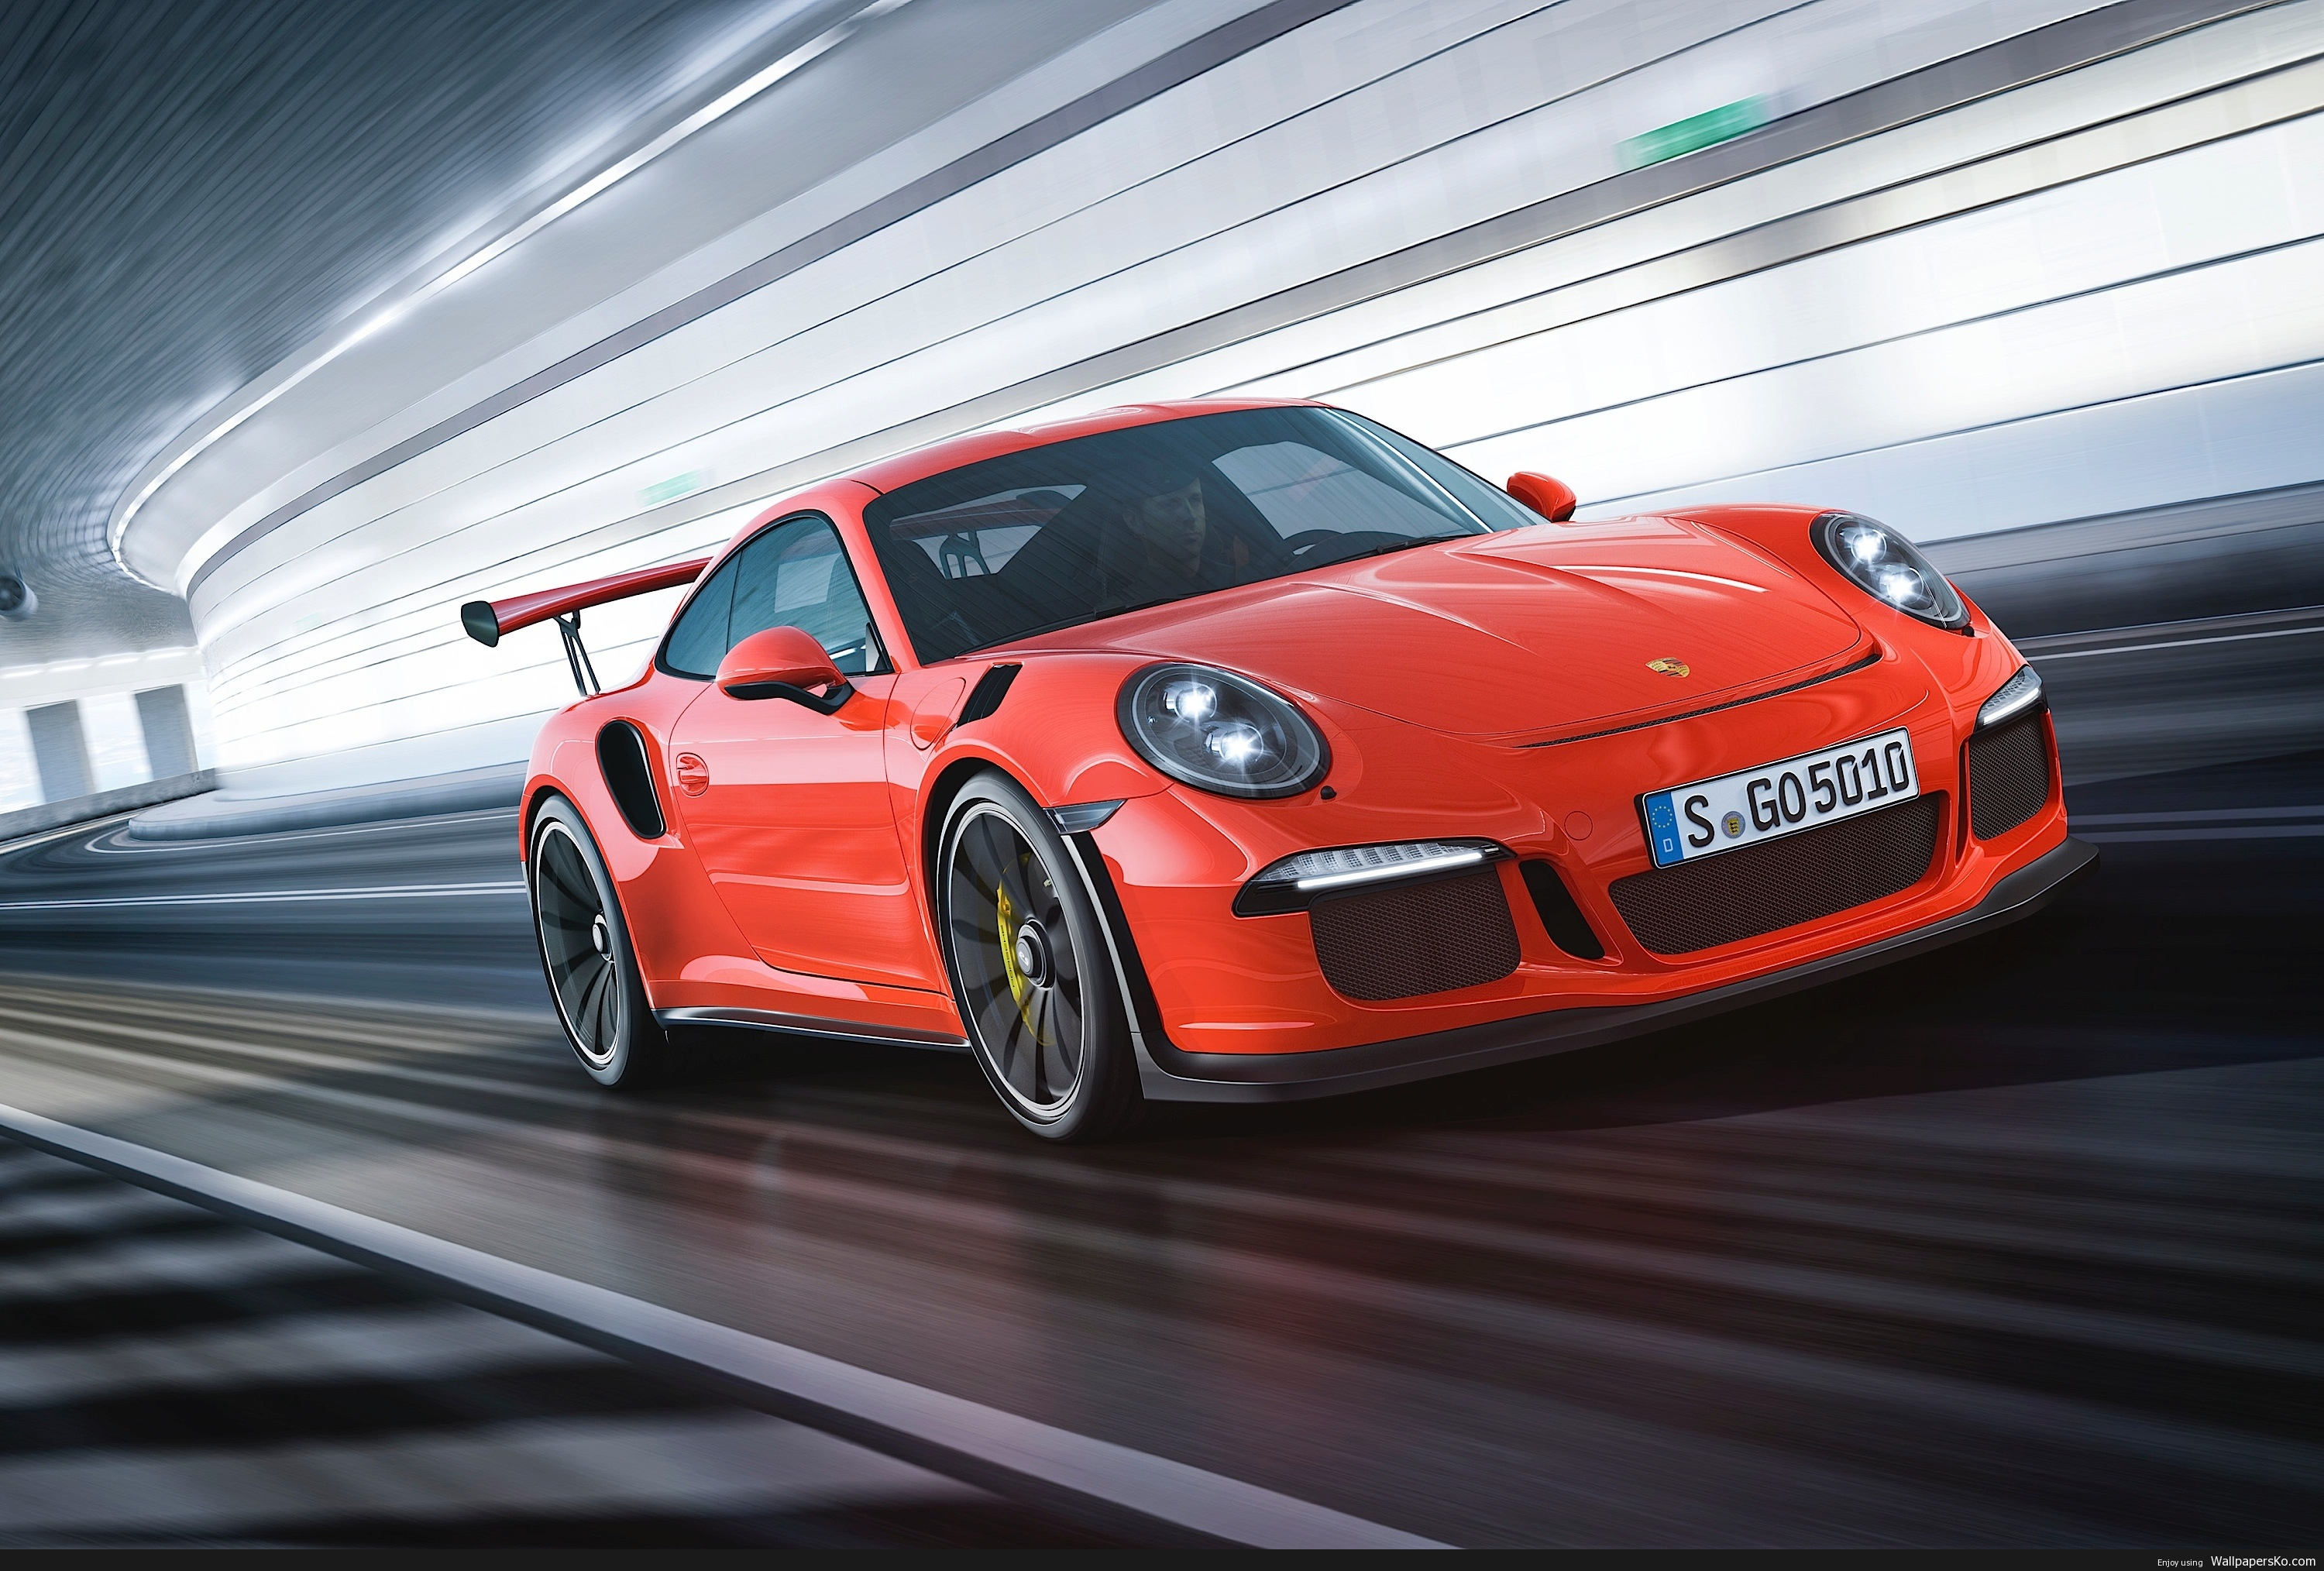 Porsche 911 Gt3 Rs Wallpaper Hd Wallpapers Download